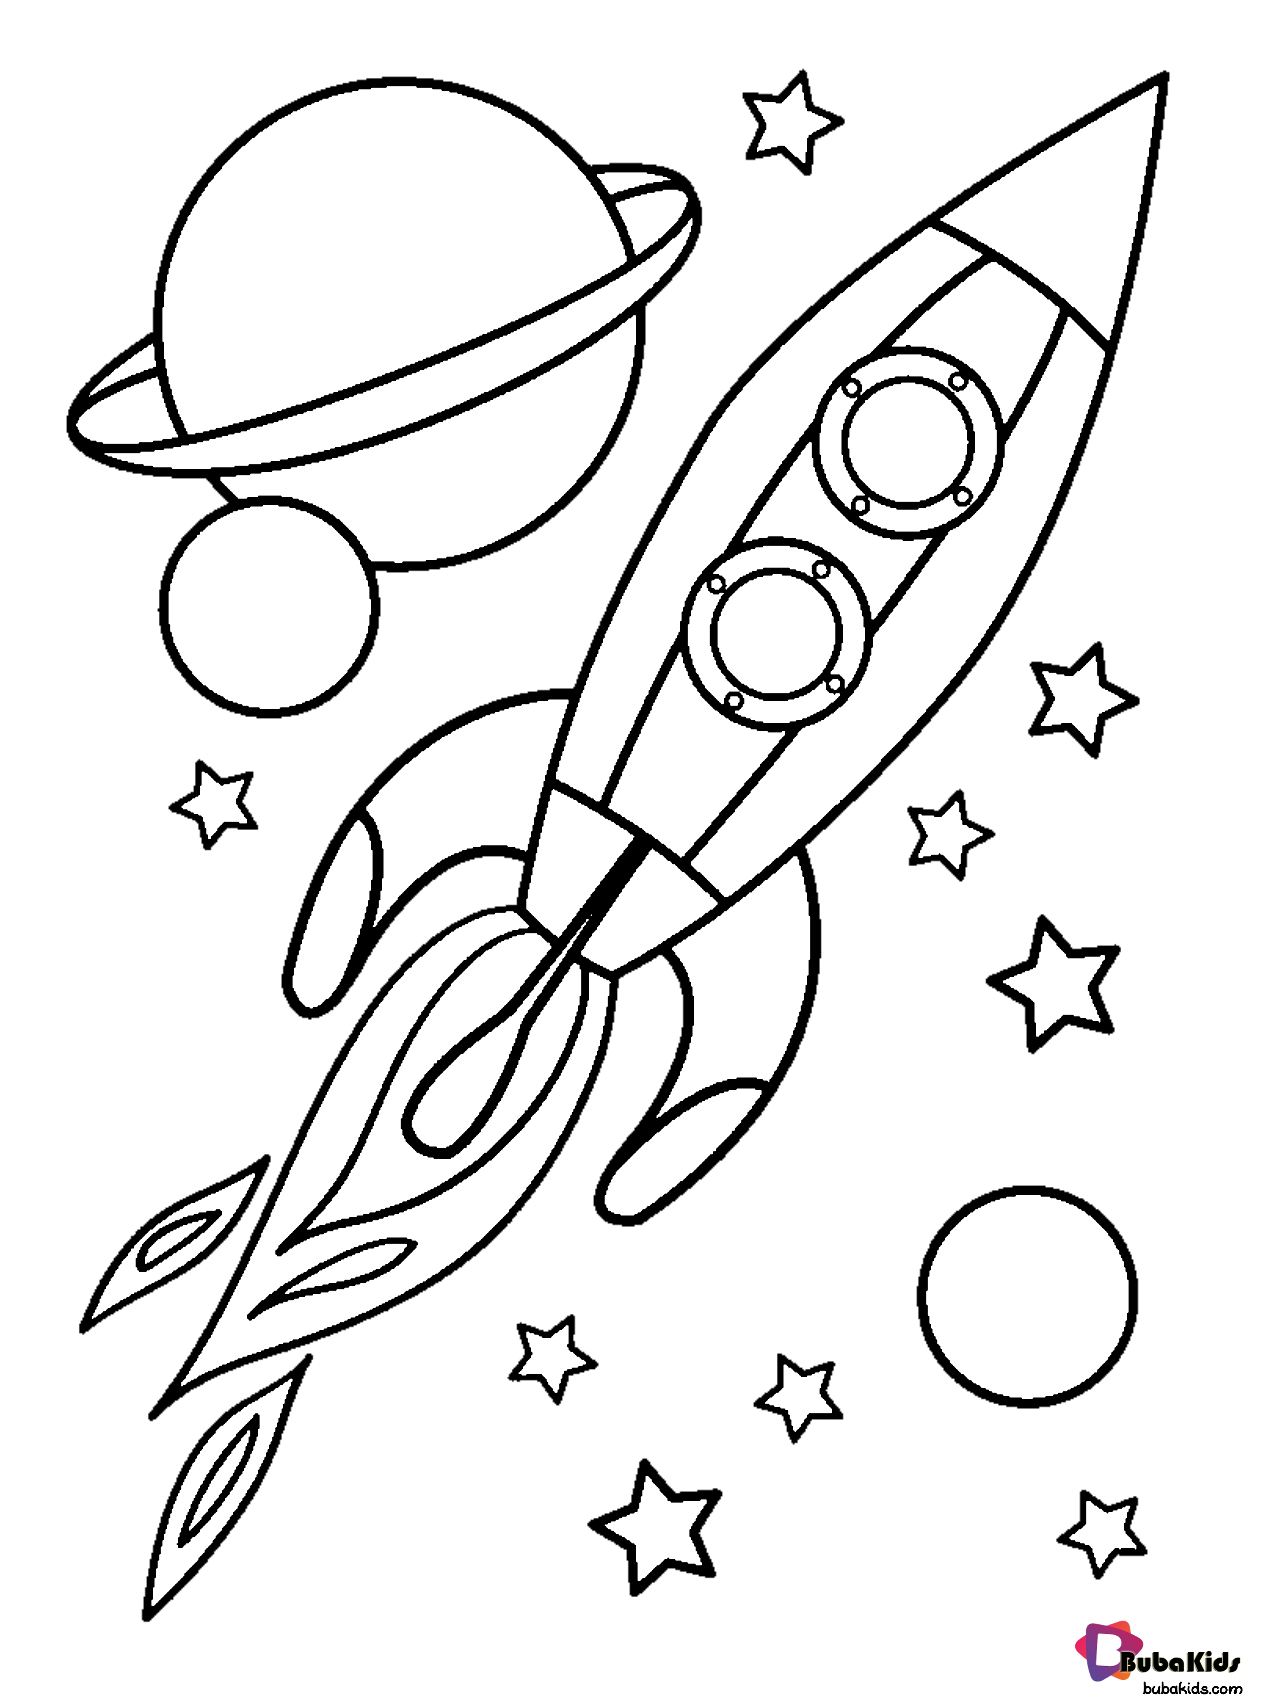 space printable coloring pages planets stars and rocket in outer space coloring page coloring space printable pages